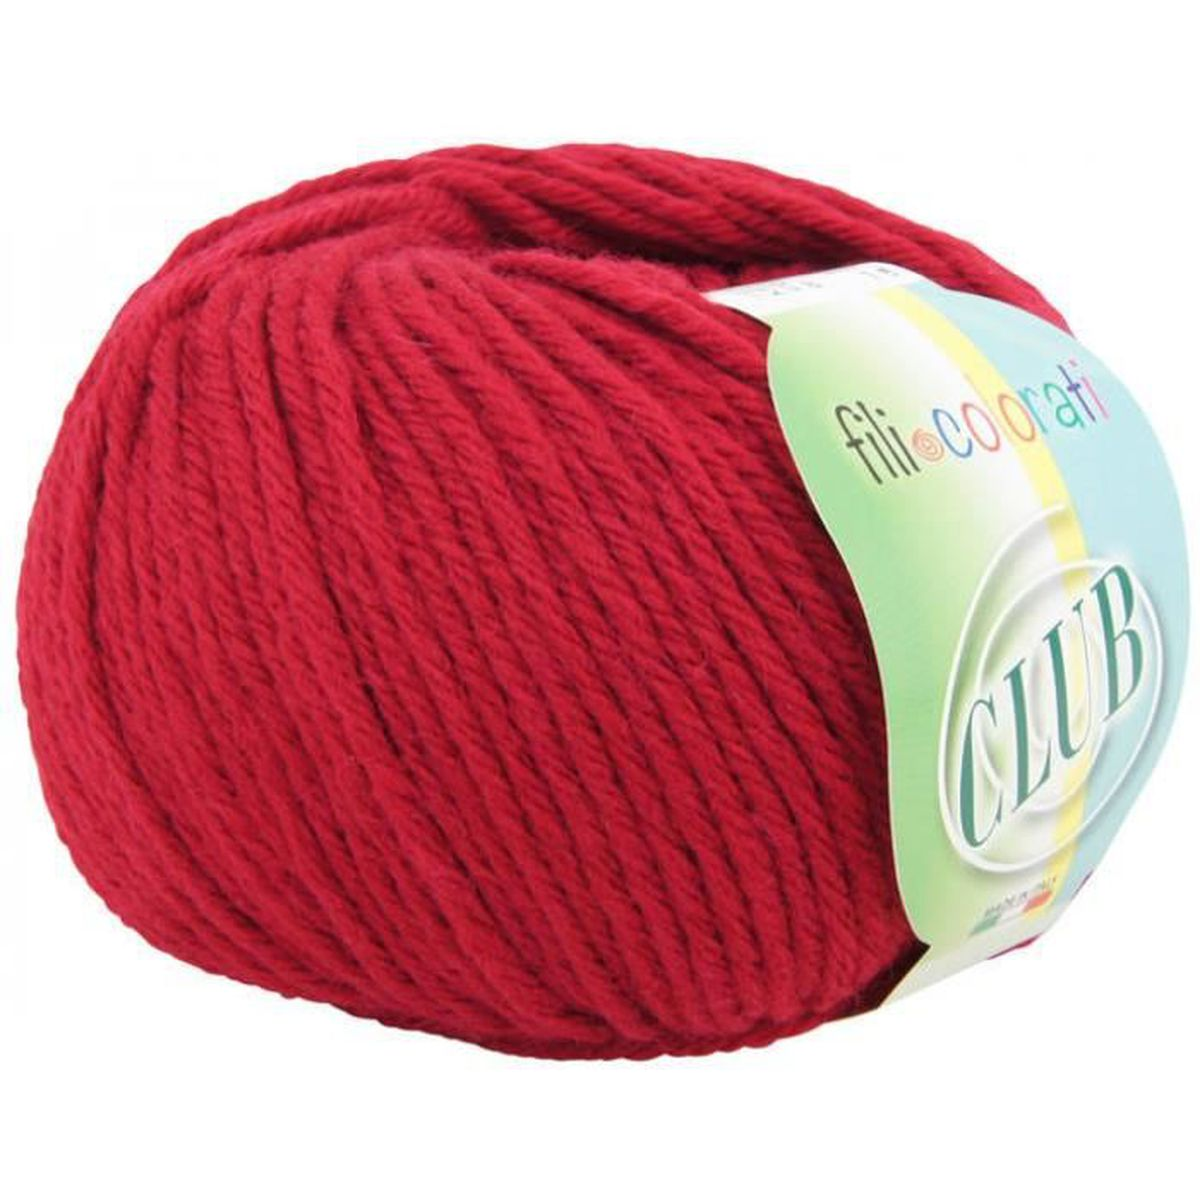 6804506e2193 LAINE TRICOT - PELOTE Pelote laine Mérinos MABELAN CLUB N°6 7 - Rouge